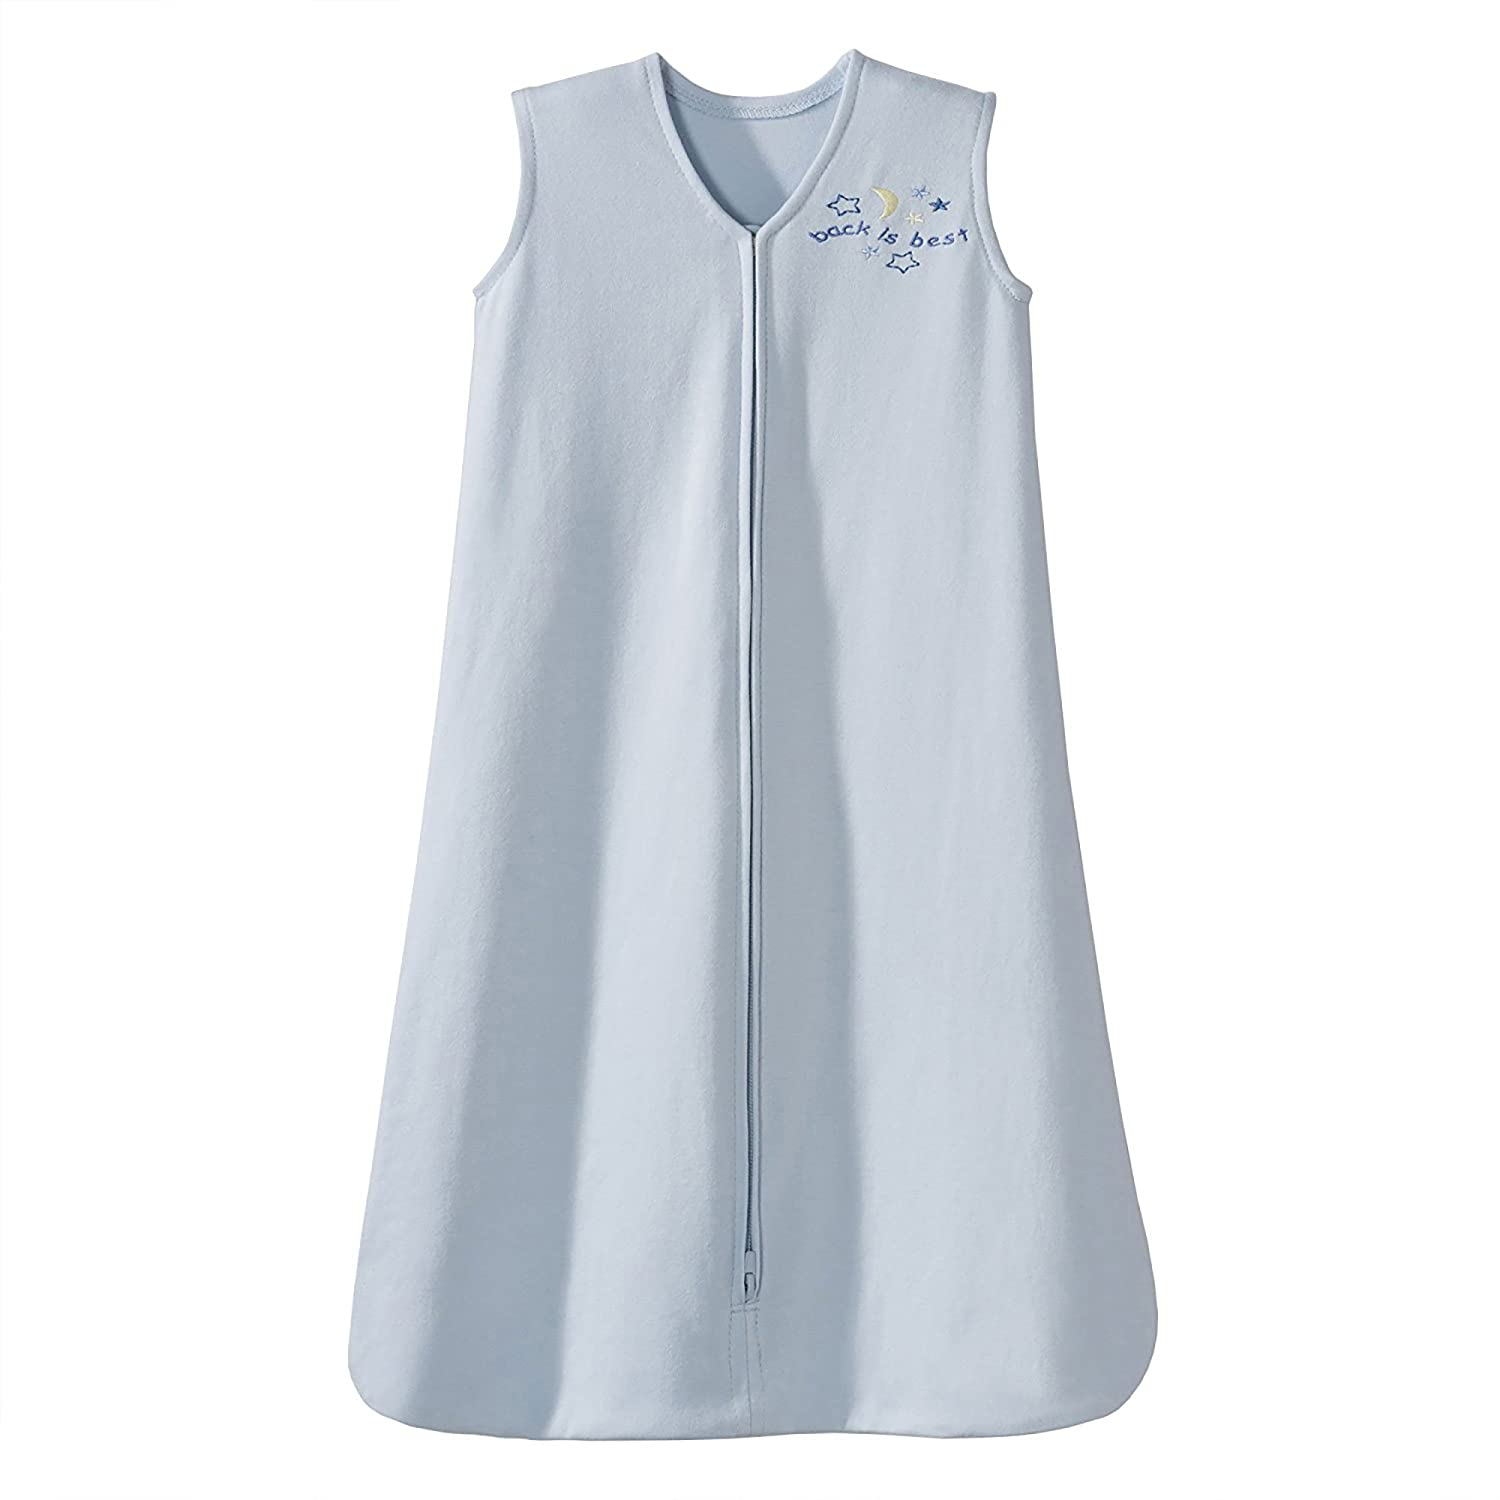 B00008KWO5 HALO Sleepsack 100% Cotton Wearable Blanket, Baby Blue, Medium 71R9IUX791L